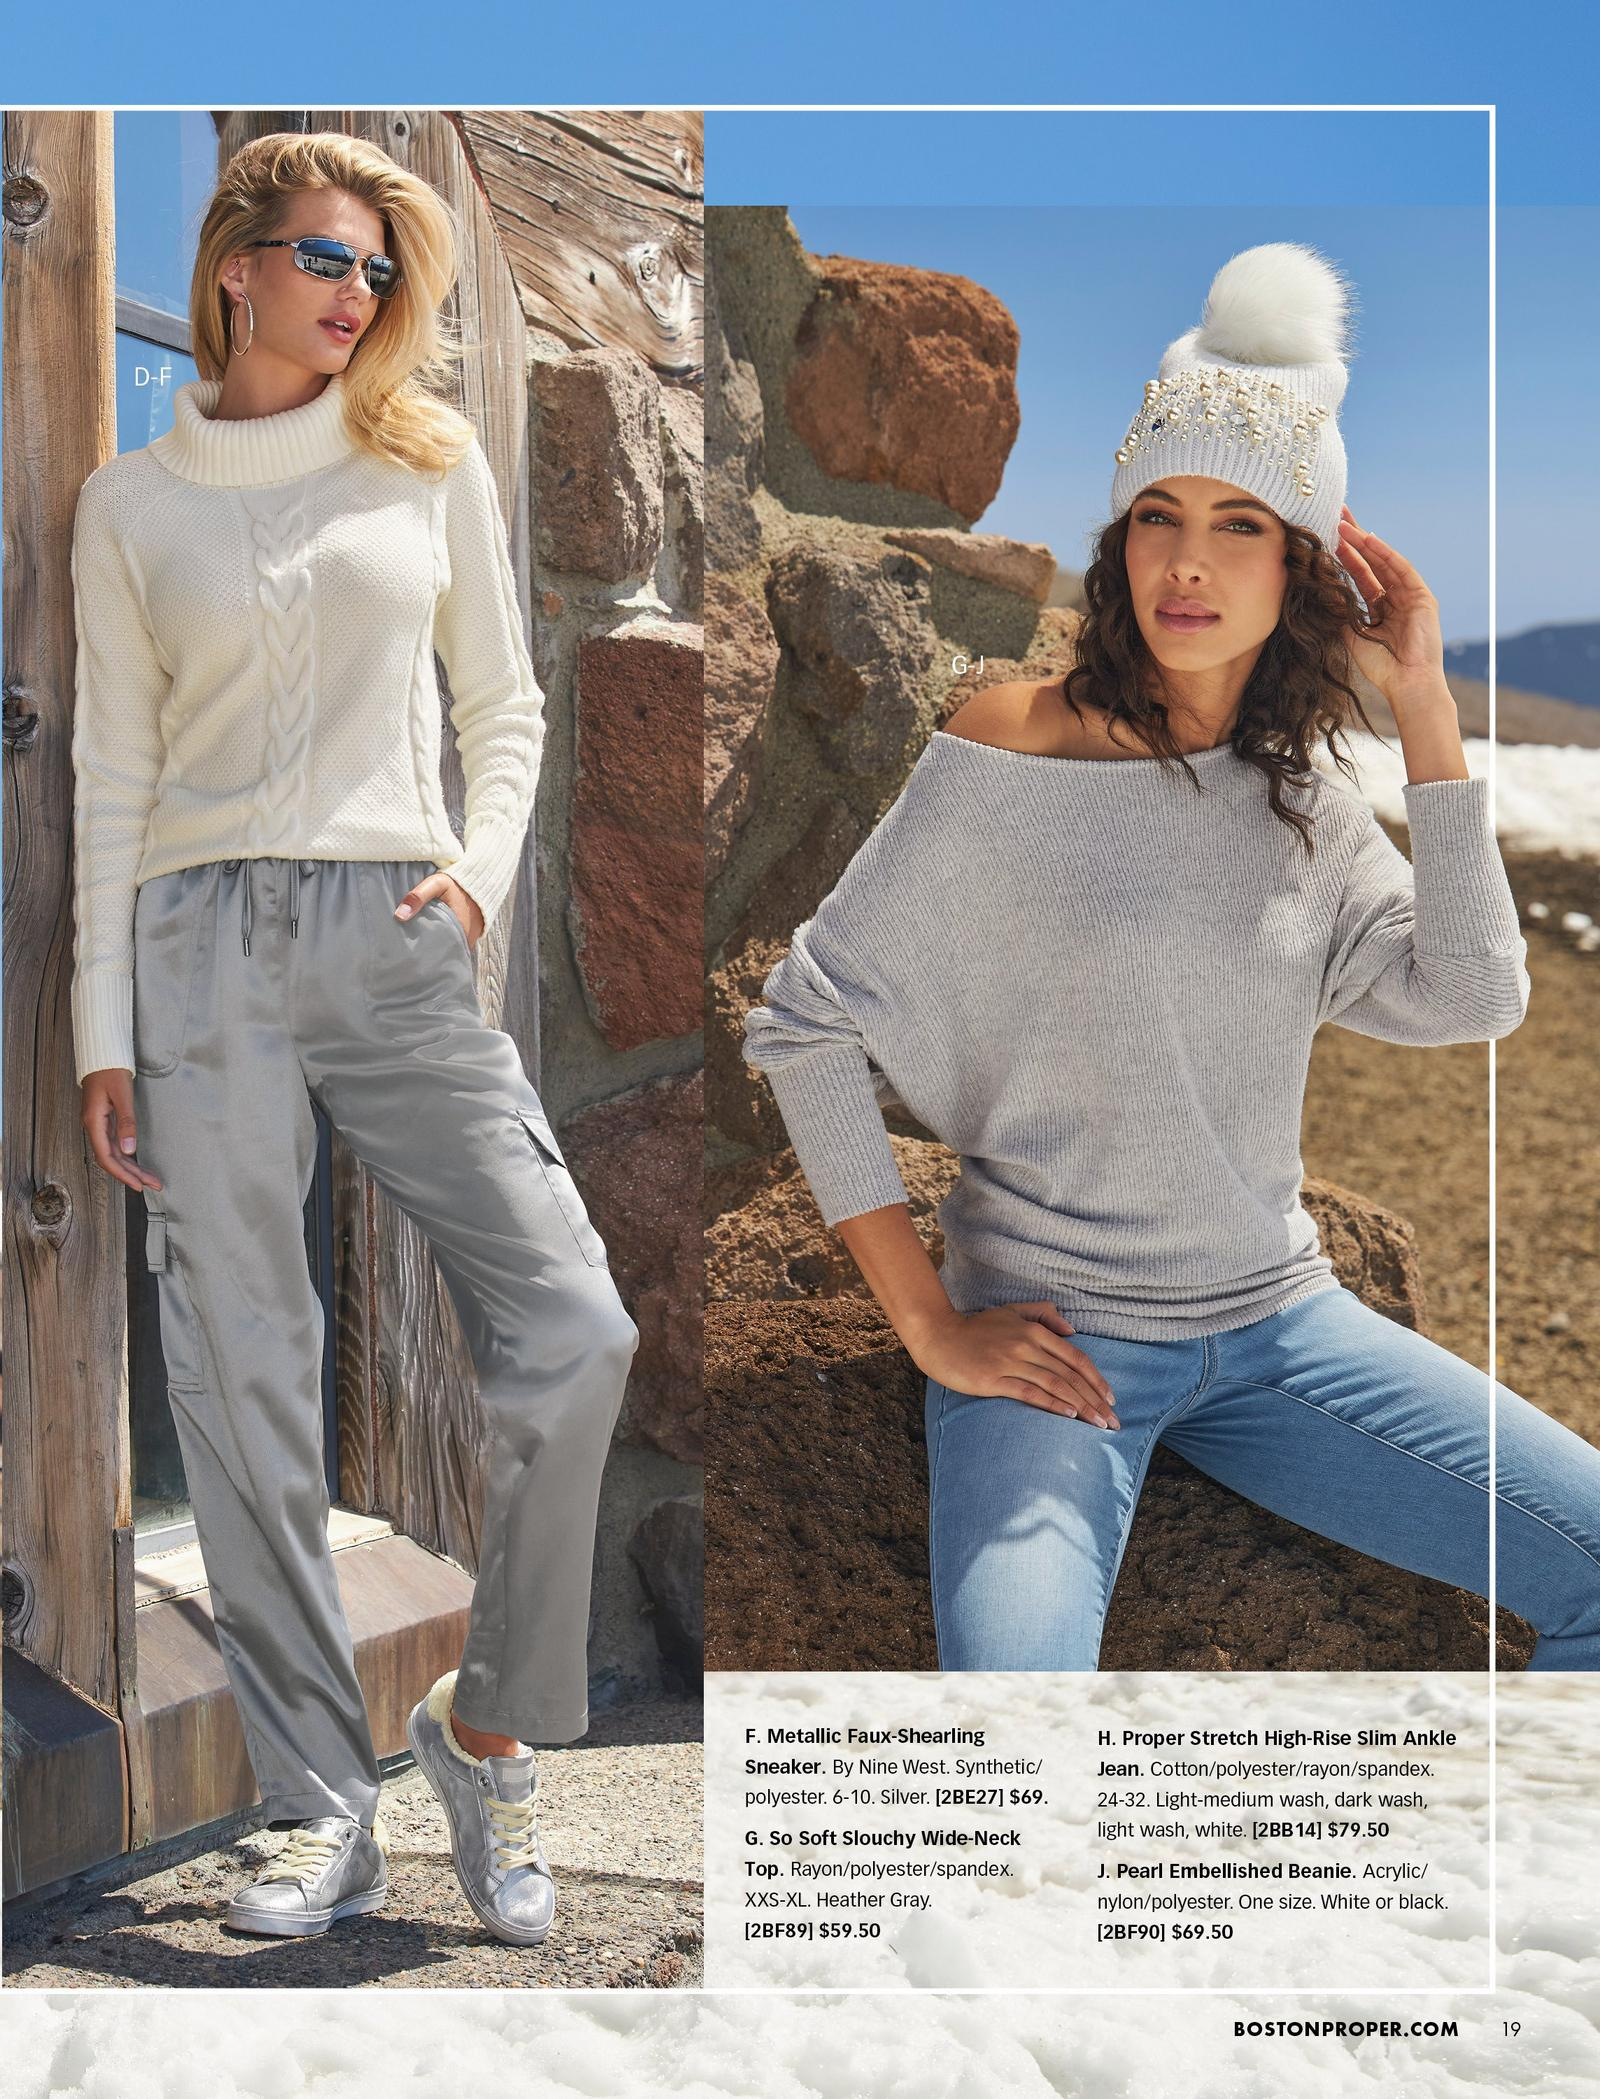 left model wearing a white cable knit turtleneck sweater, silver charmeuse cargo pants, and silver faux-shearling sneakers. right model wearing a gray slouchy wide-neck top, light wash jeans, and a gray pearl embellished beanie with a white faux-fur pom-pom.